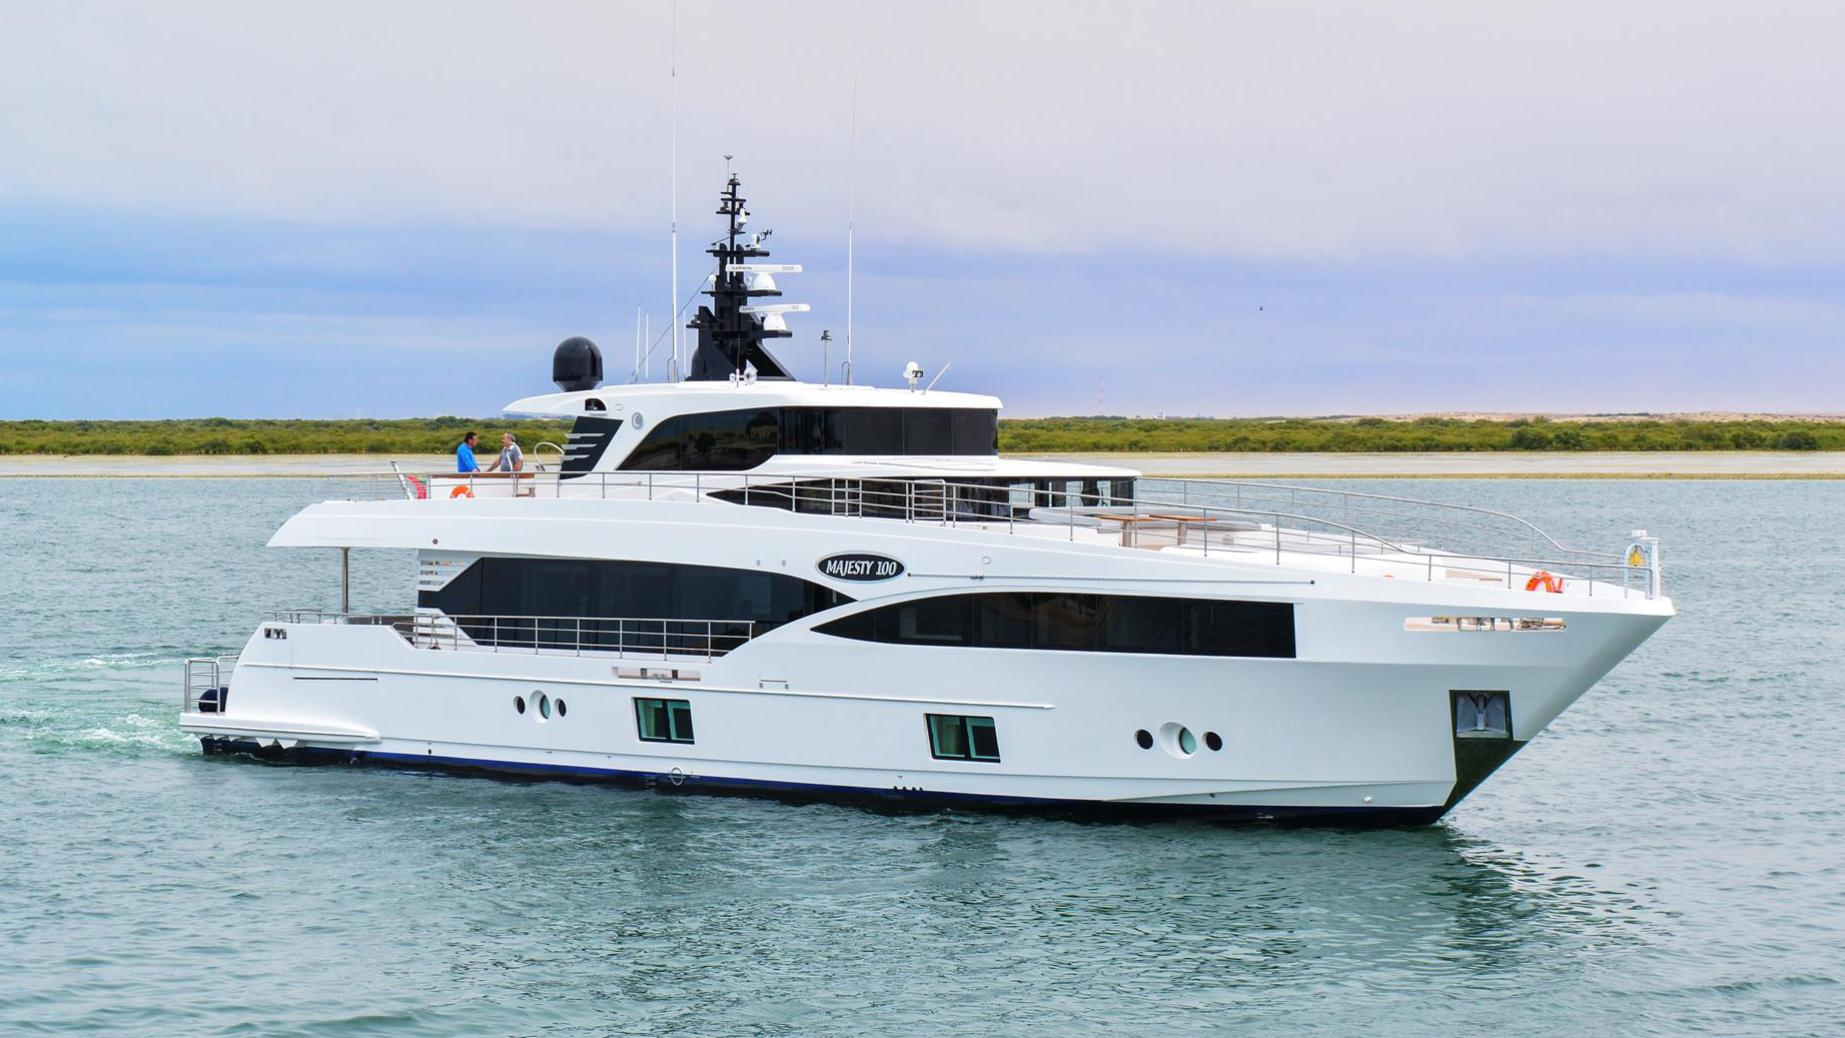 motoryacht gulf craft majesty 100 hull 4 32m 2018 half profile sistership